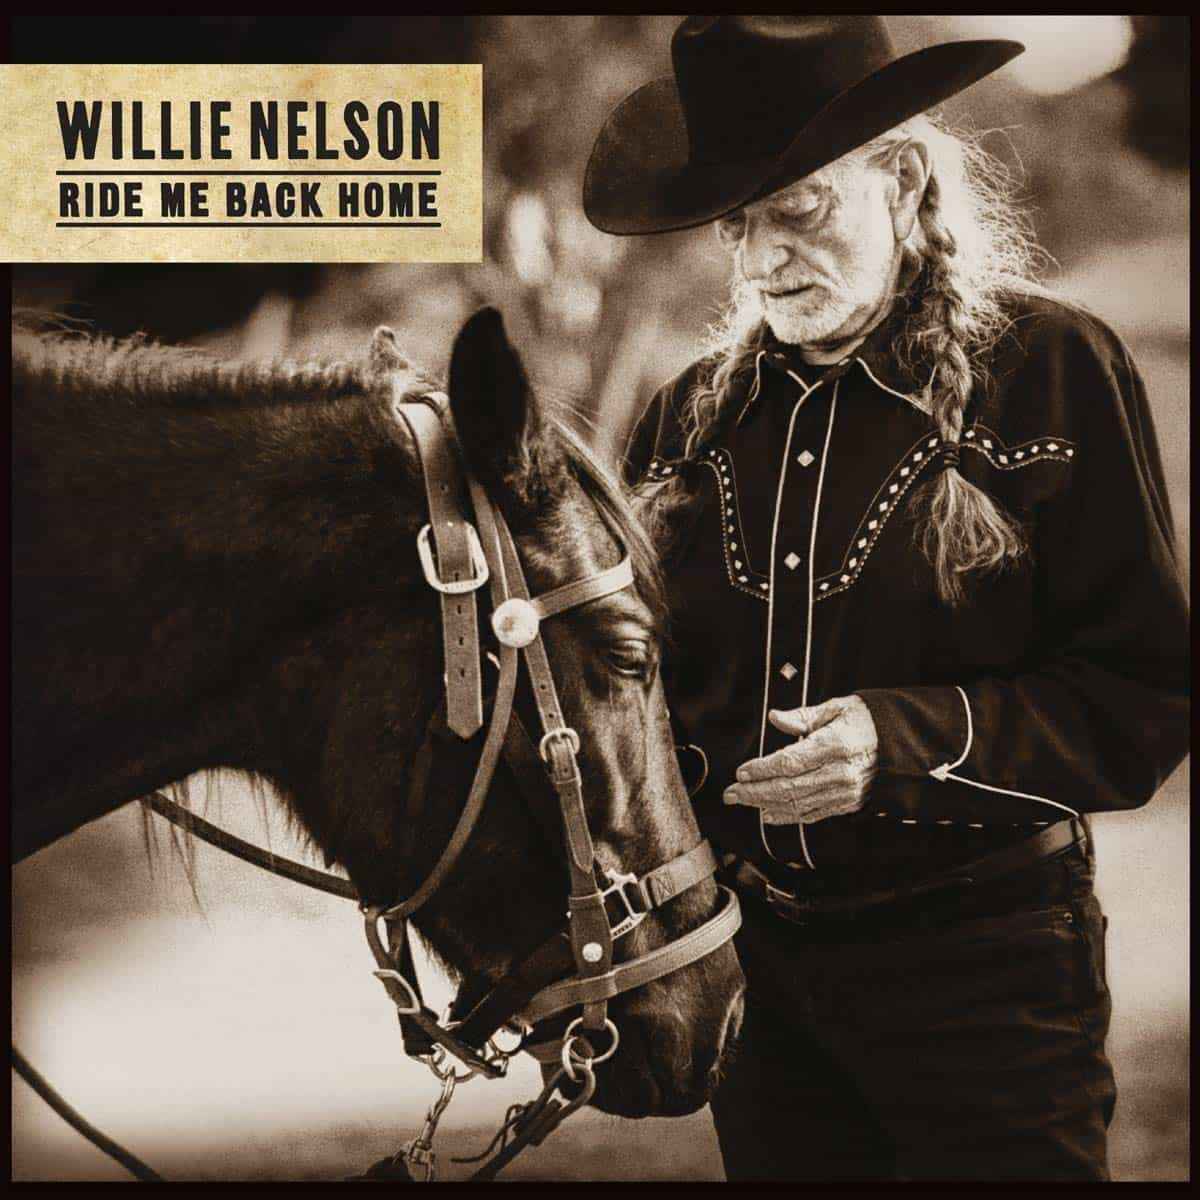 Willie Nelson - Country-CD Ride Me Back Home veröffentlicht